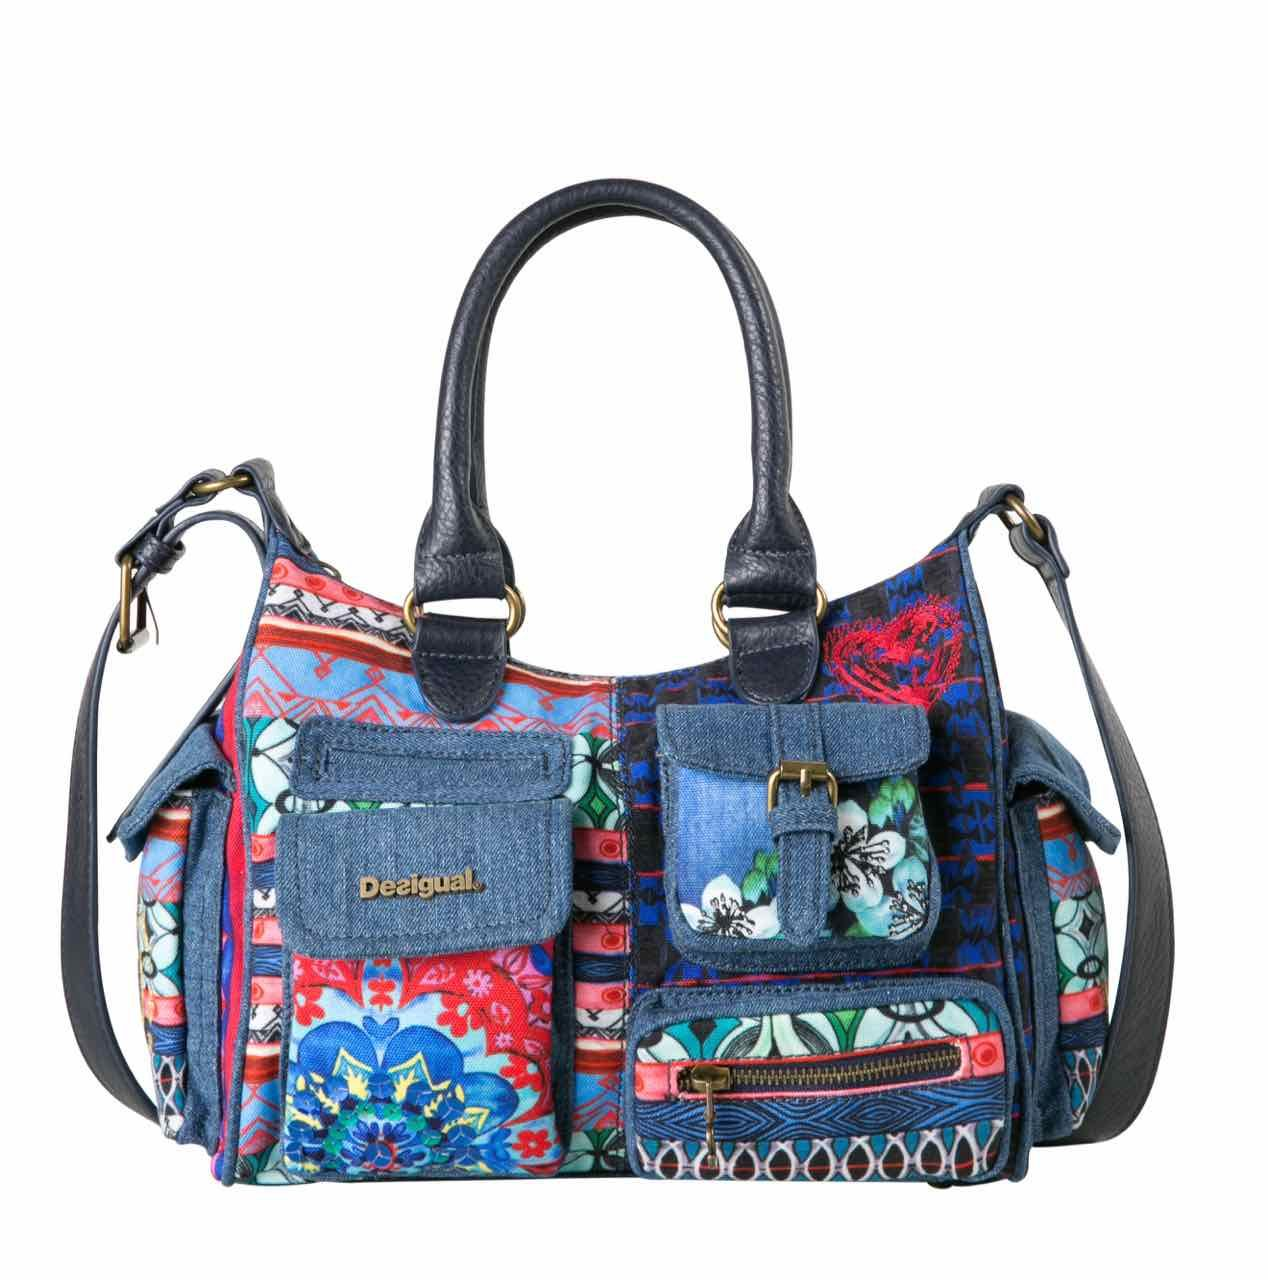 65X52E2_5001 Desigual Bag Mini London Culture Club Buy